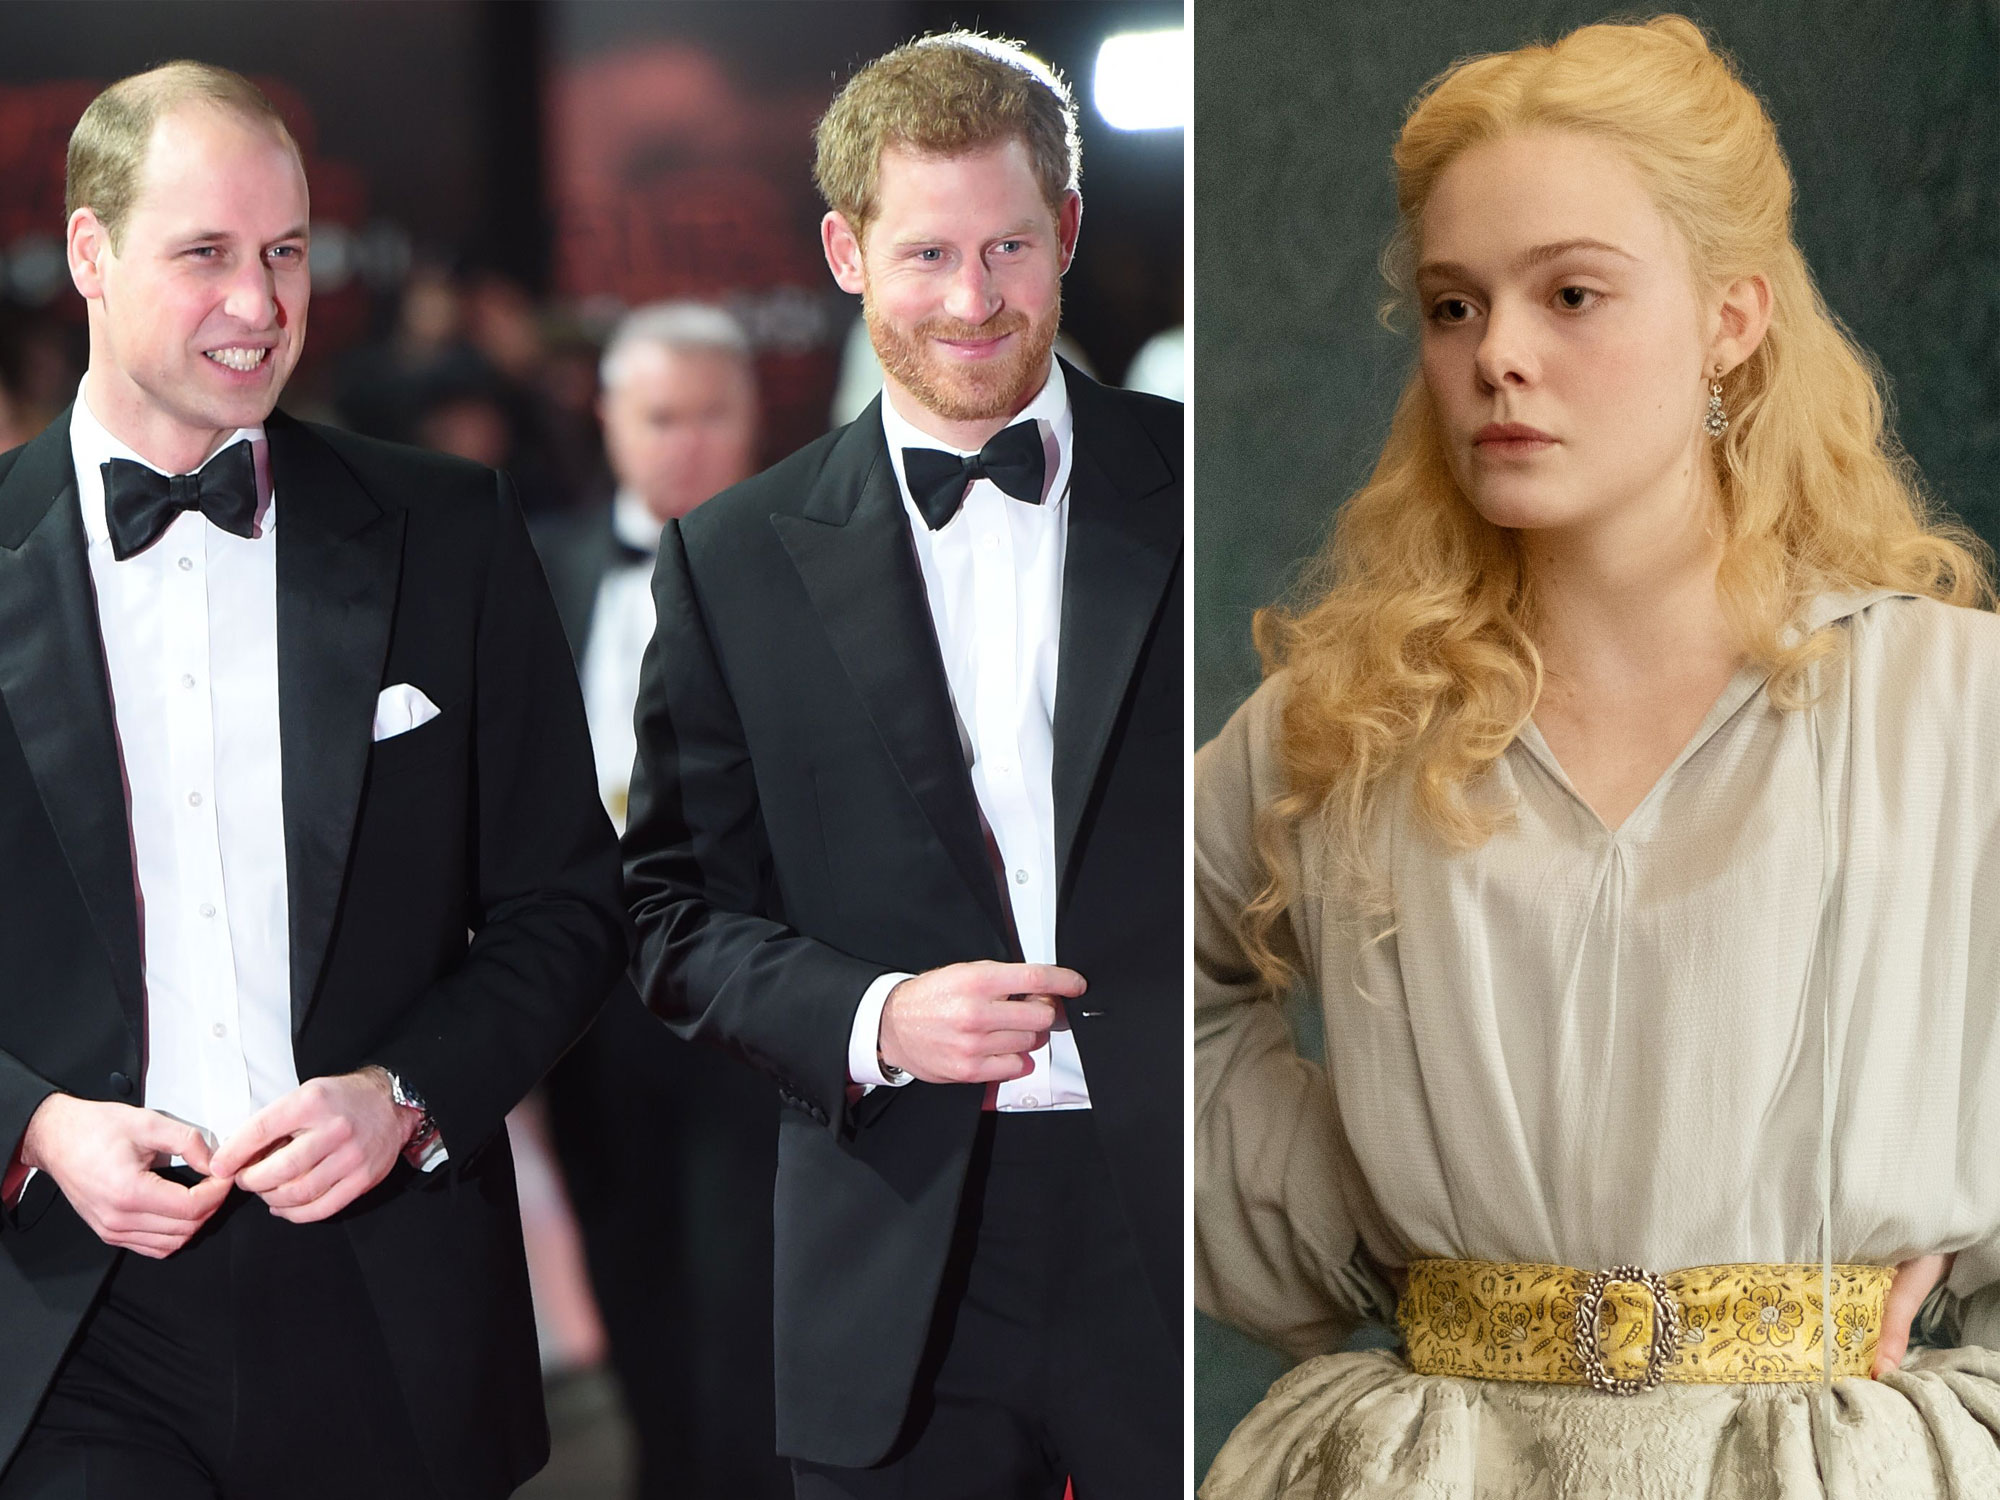 Prince Harry and Prince William Are Direct Descendants of Catherine the Great